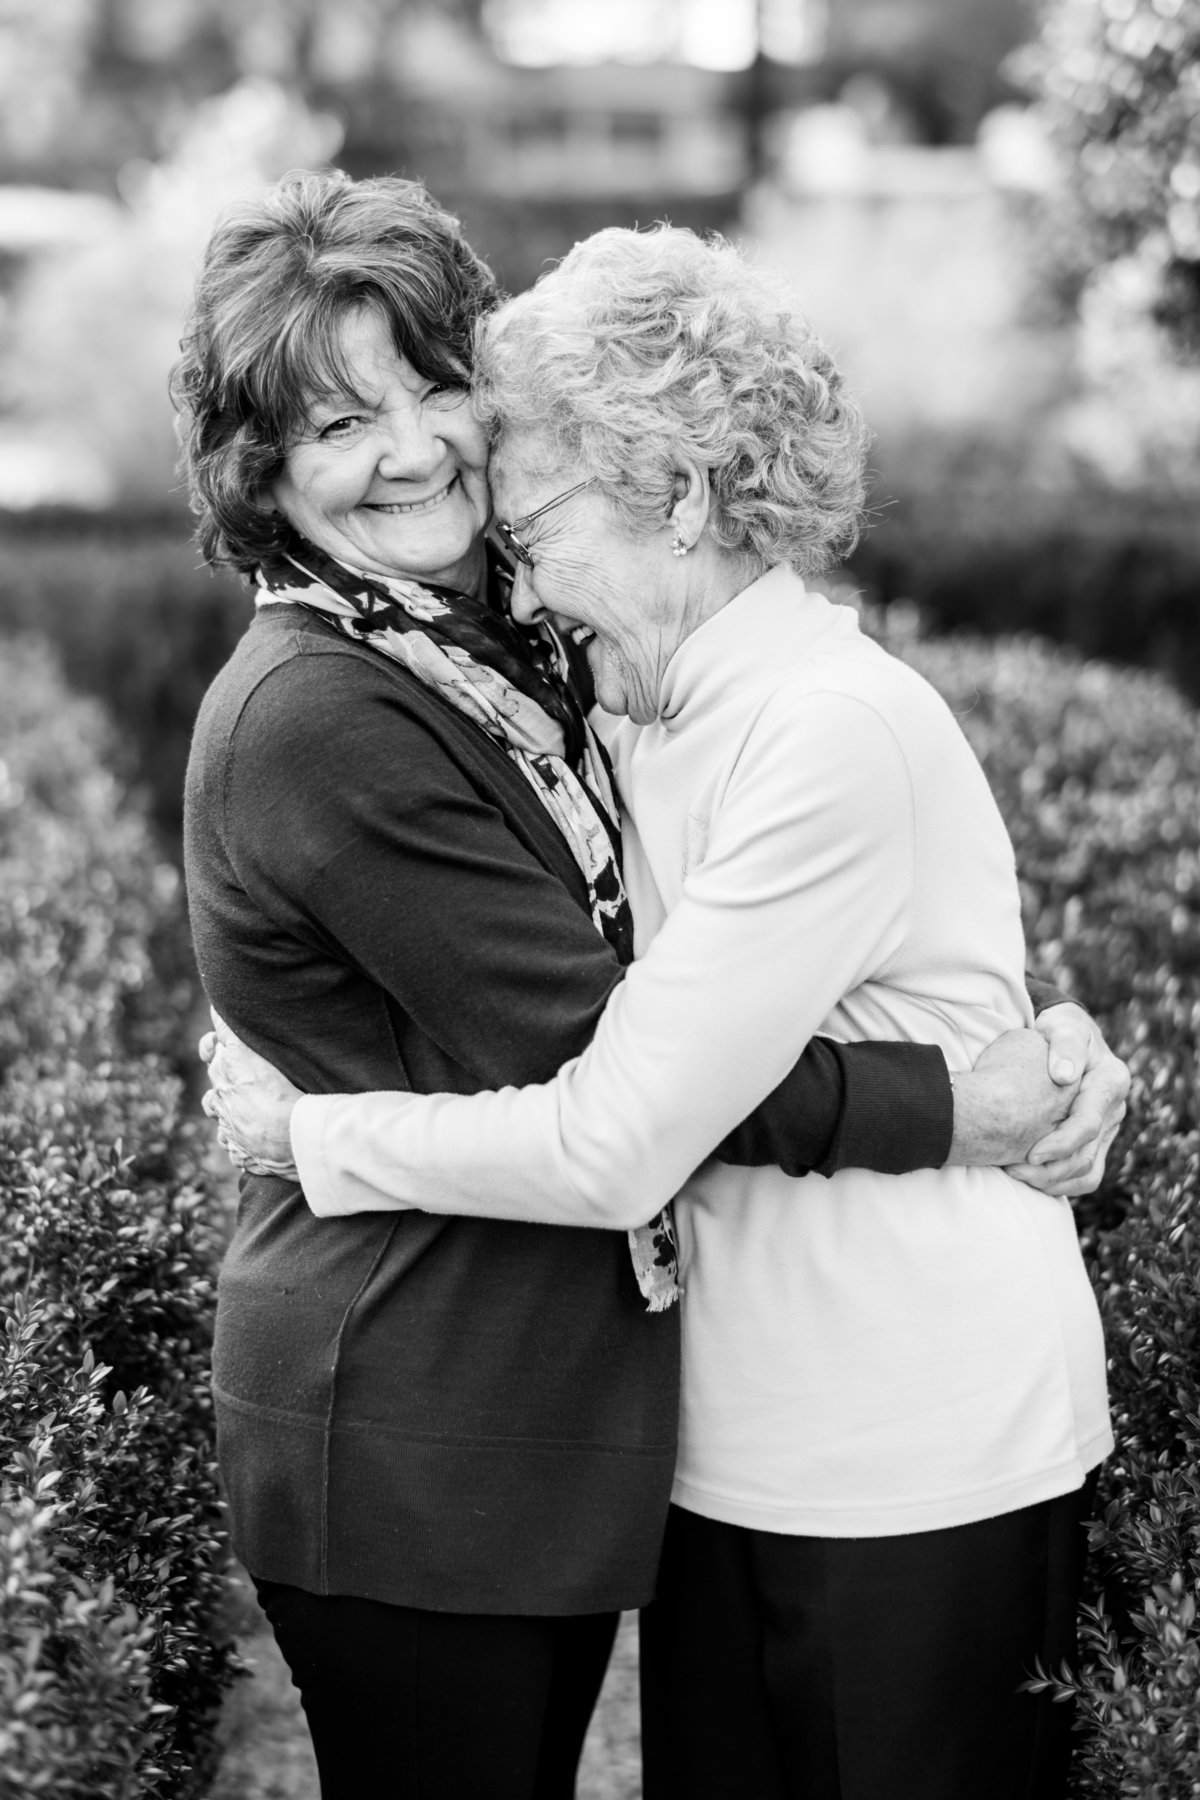 Great grandmother embracing her daughter while laughing